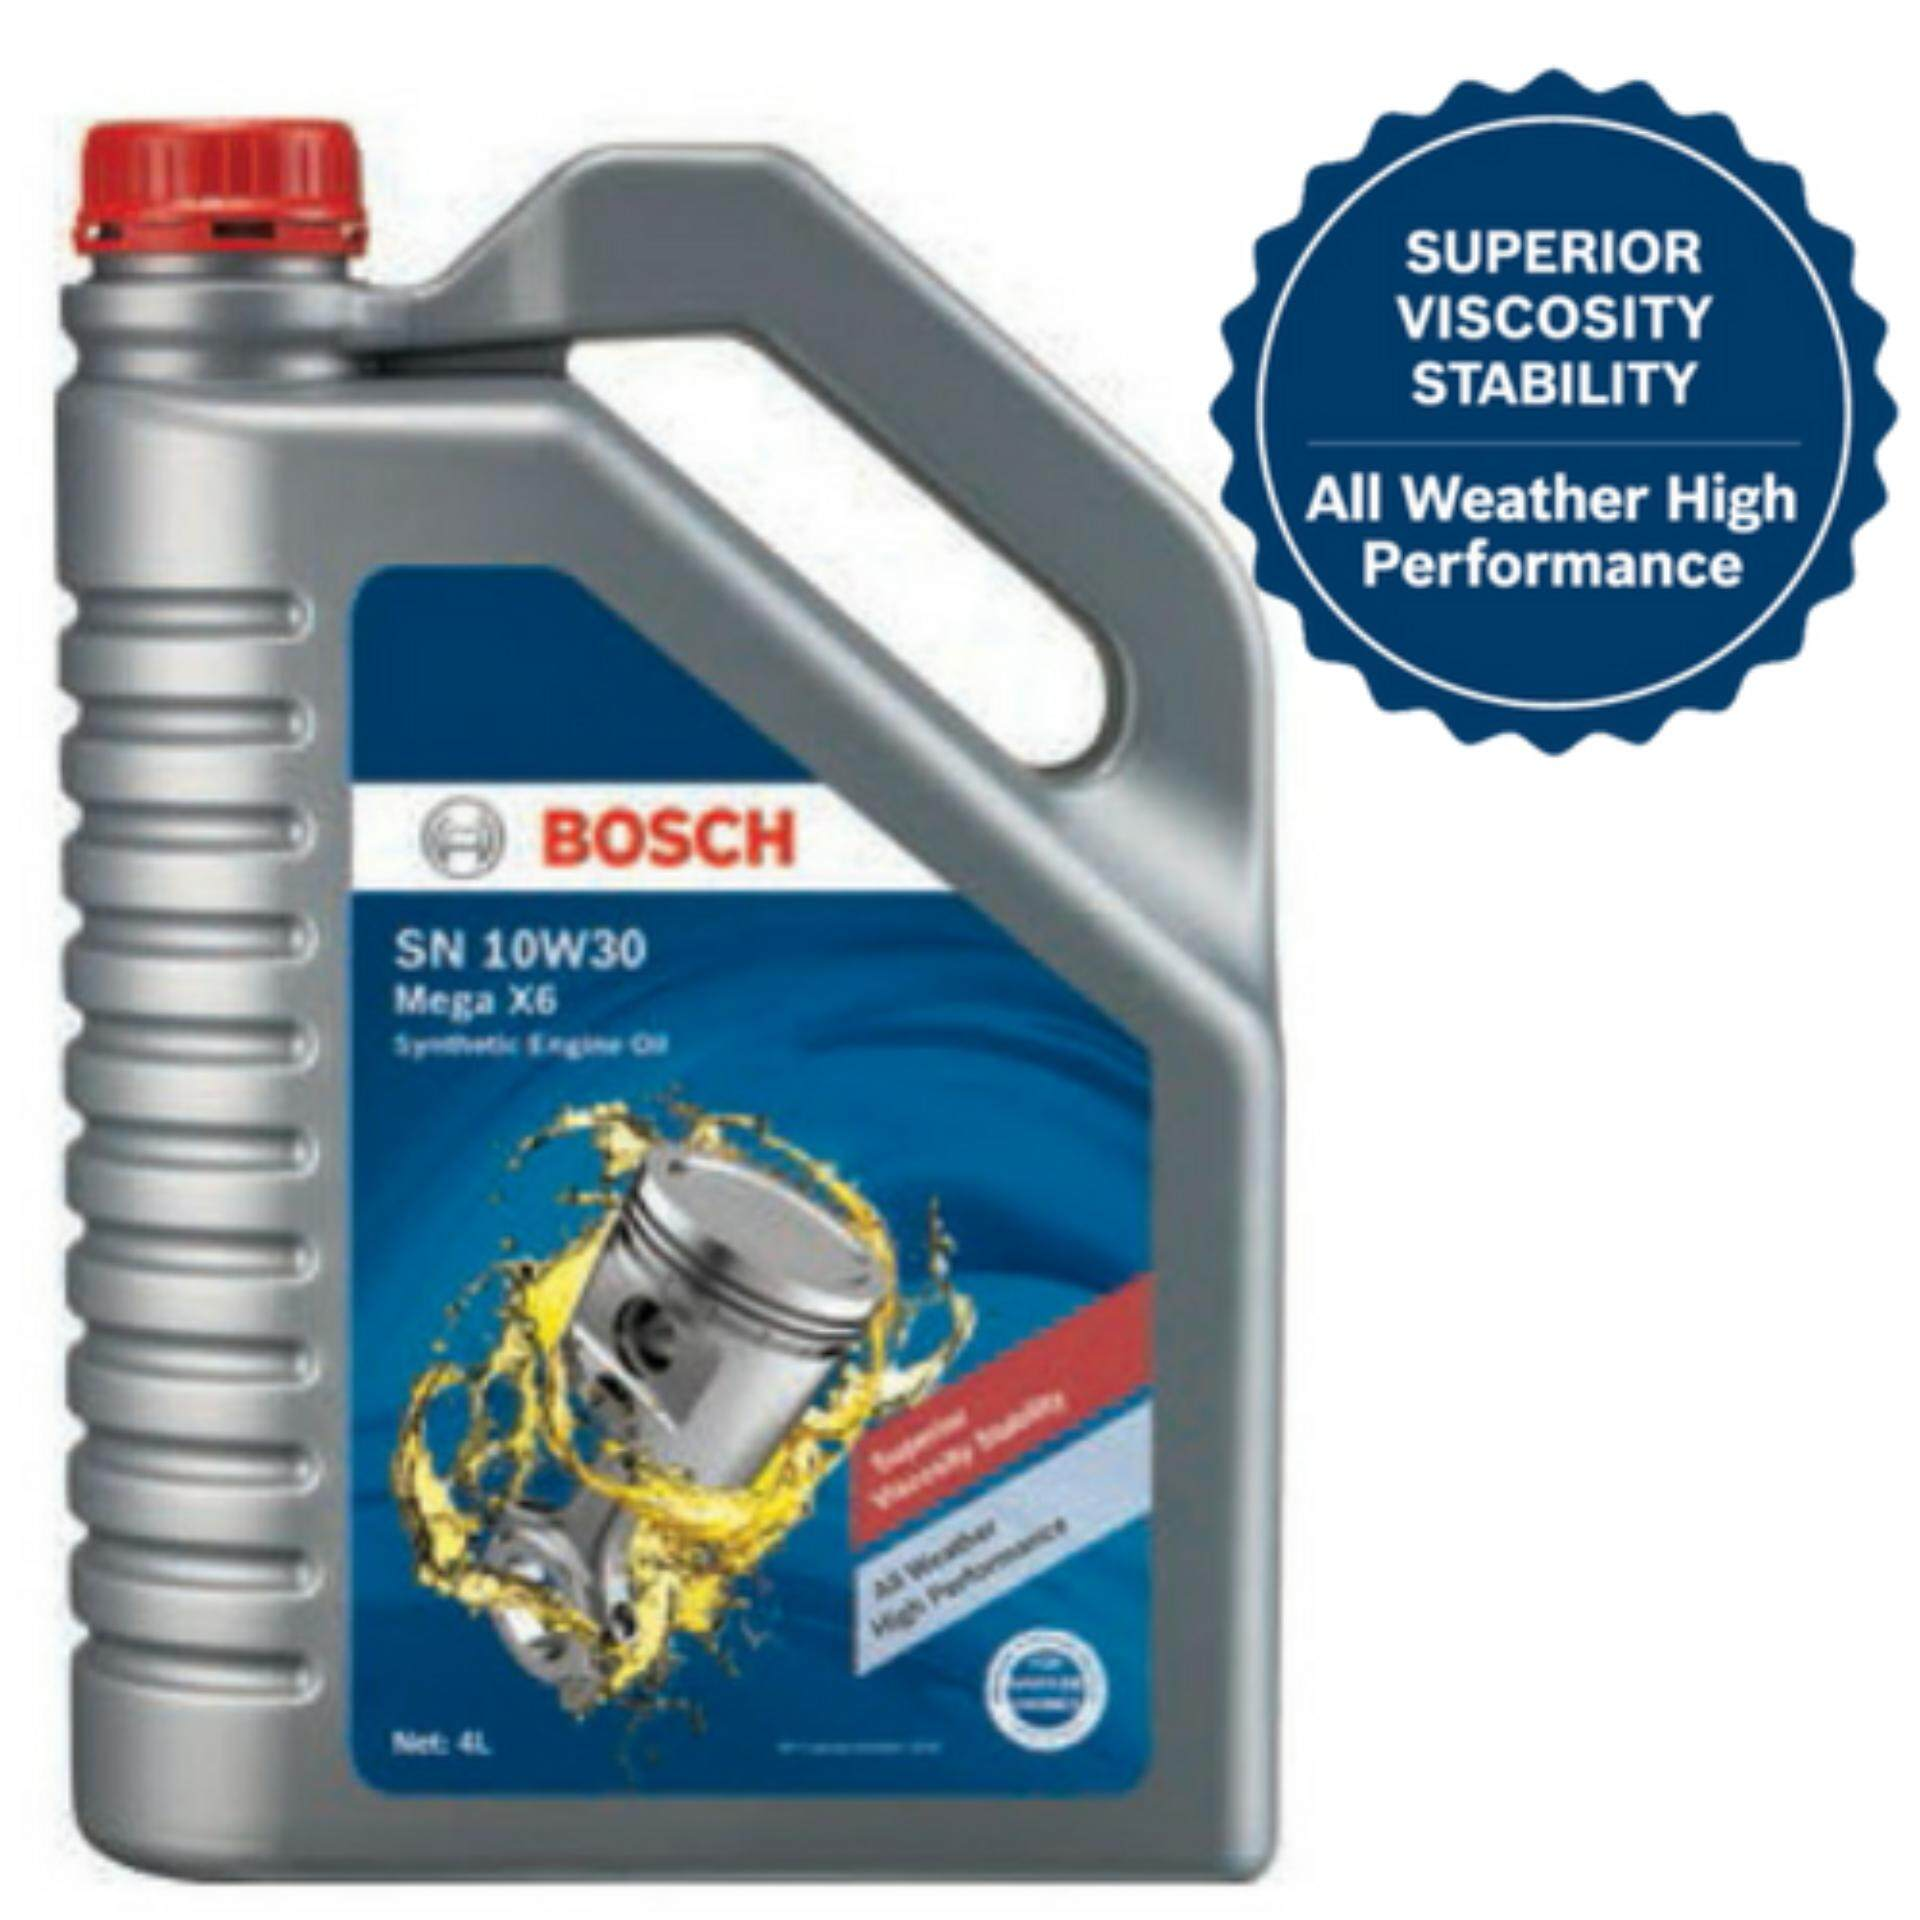 BOSCH SN 10W30 Mega X6 Semi Synthetic Engine Oil - 4L